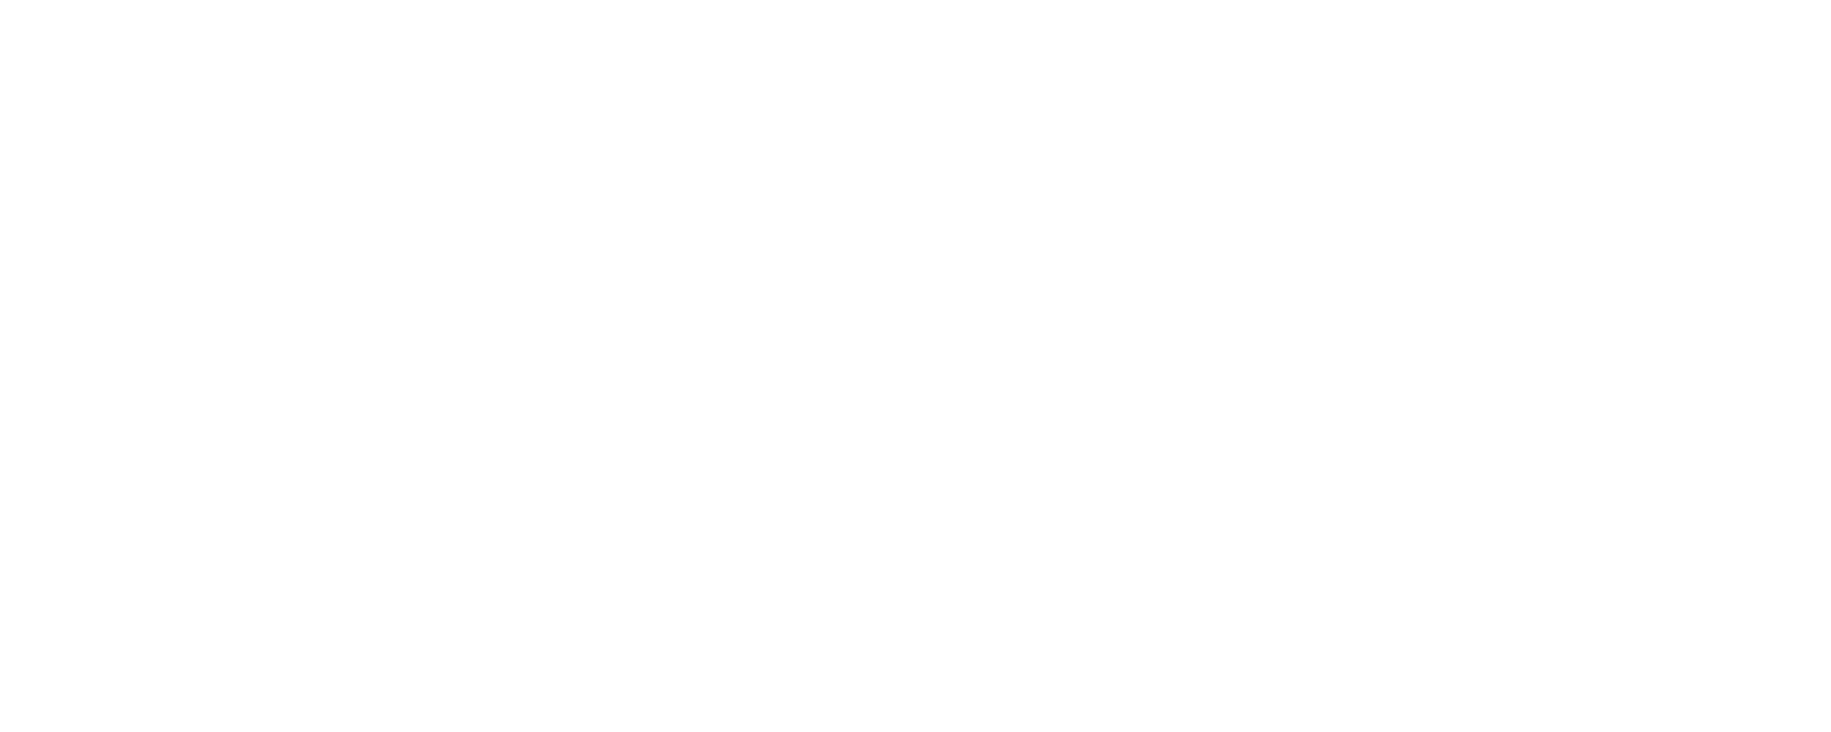 Mizuno Performance Center